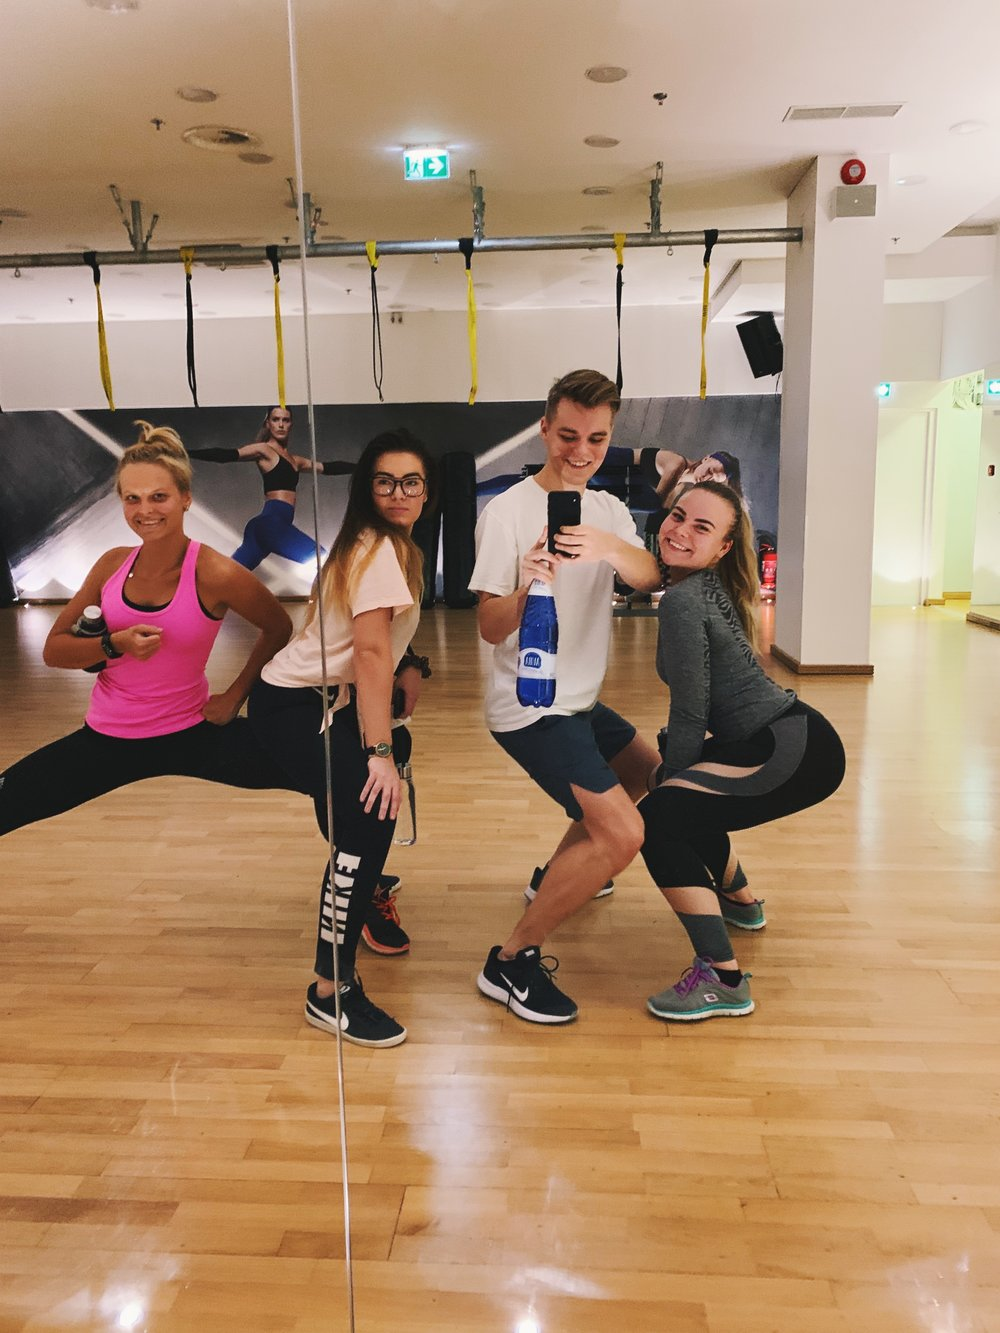 May we present to you - the Fit* Foursome - Brought to you by MyFitness & Wolt.